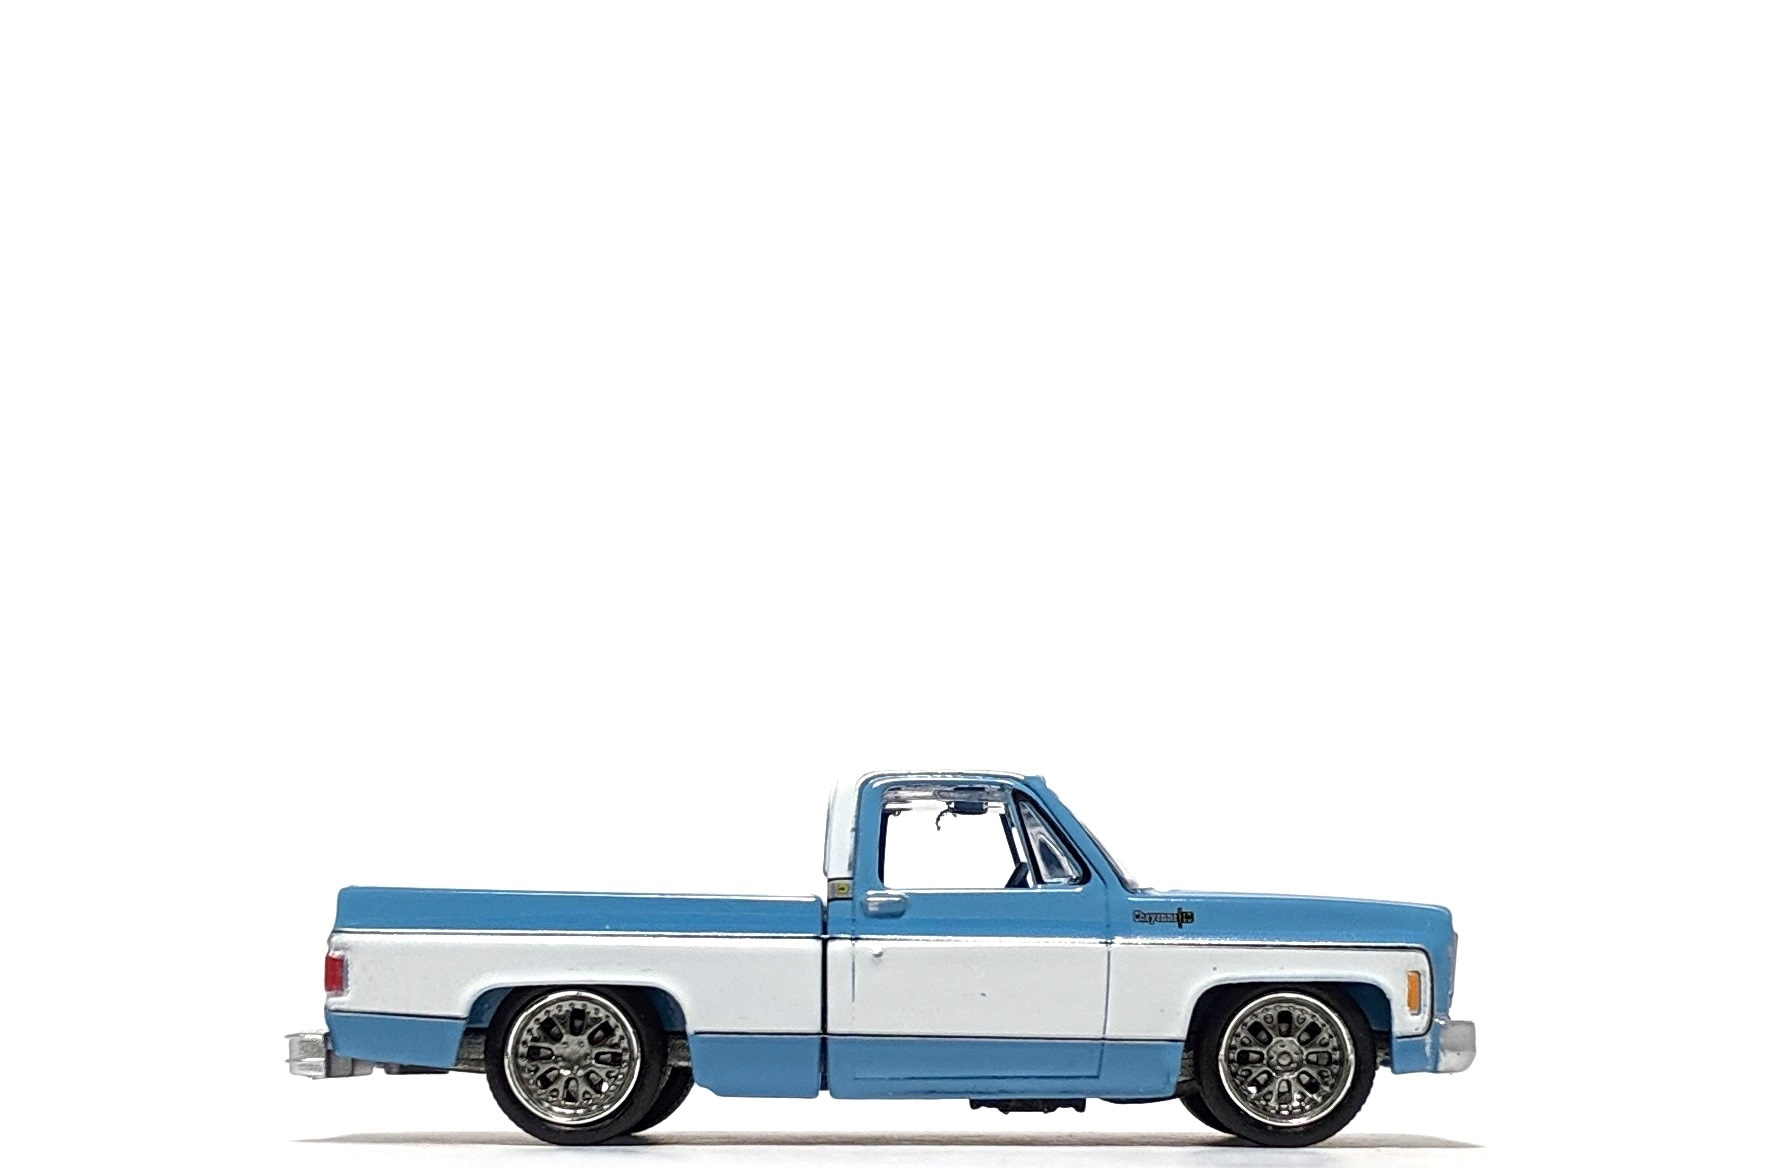 1973 Chevy Cheyenne Fleetside in Light Blue, by Auto World